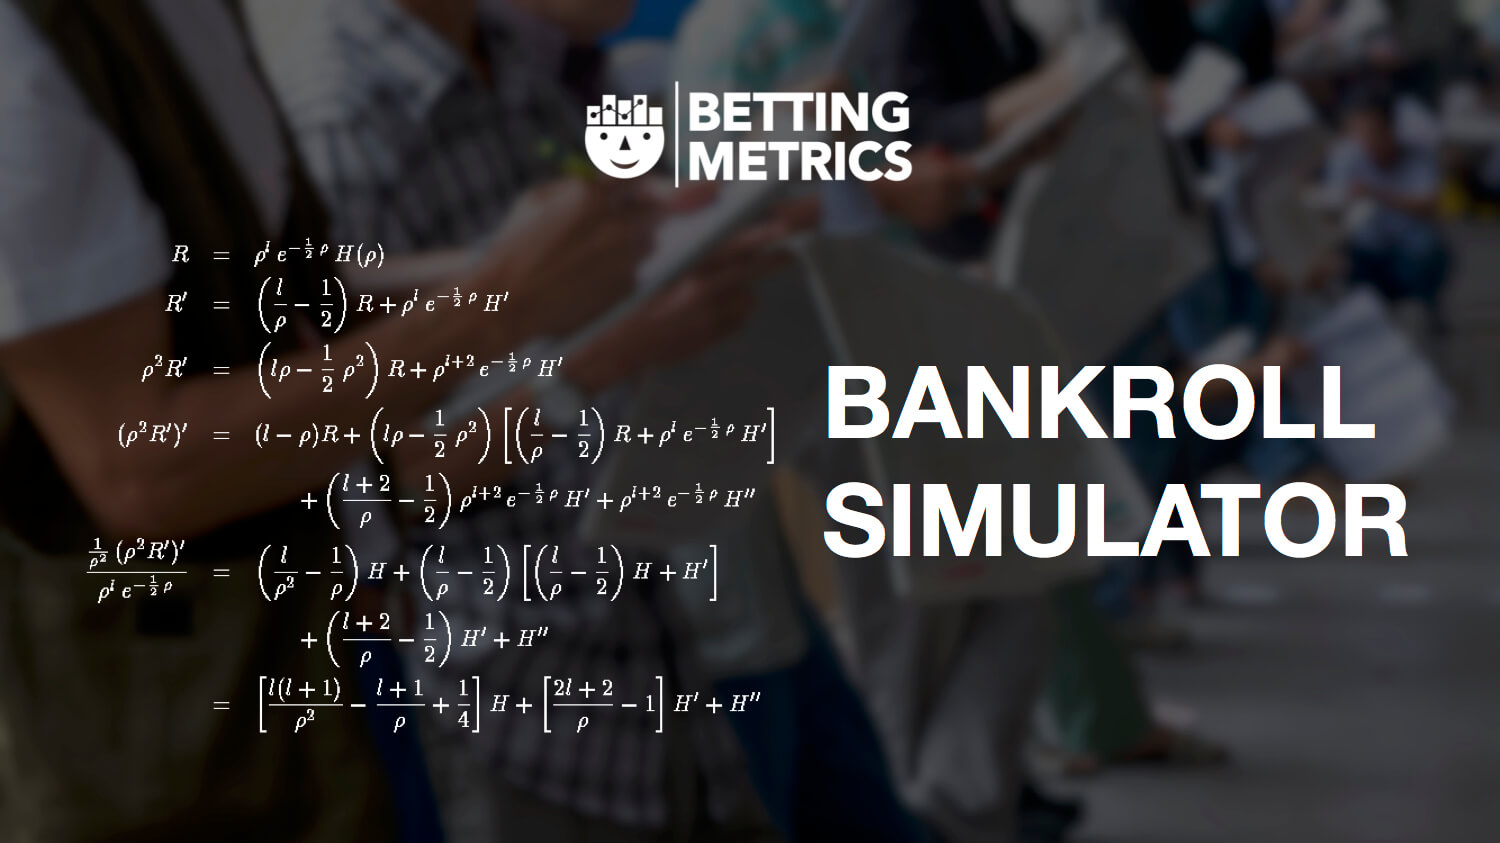 Bankroll Management - Bettingmetrics